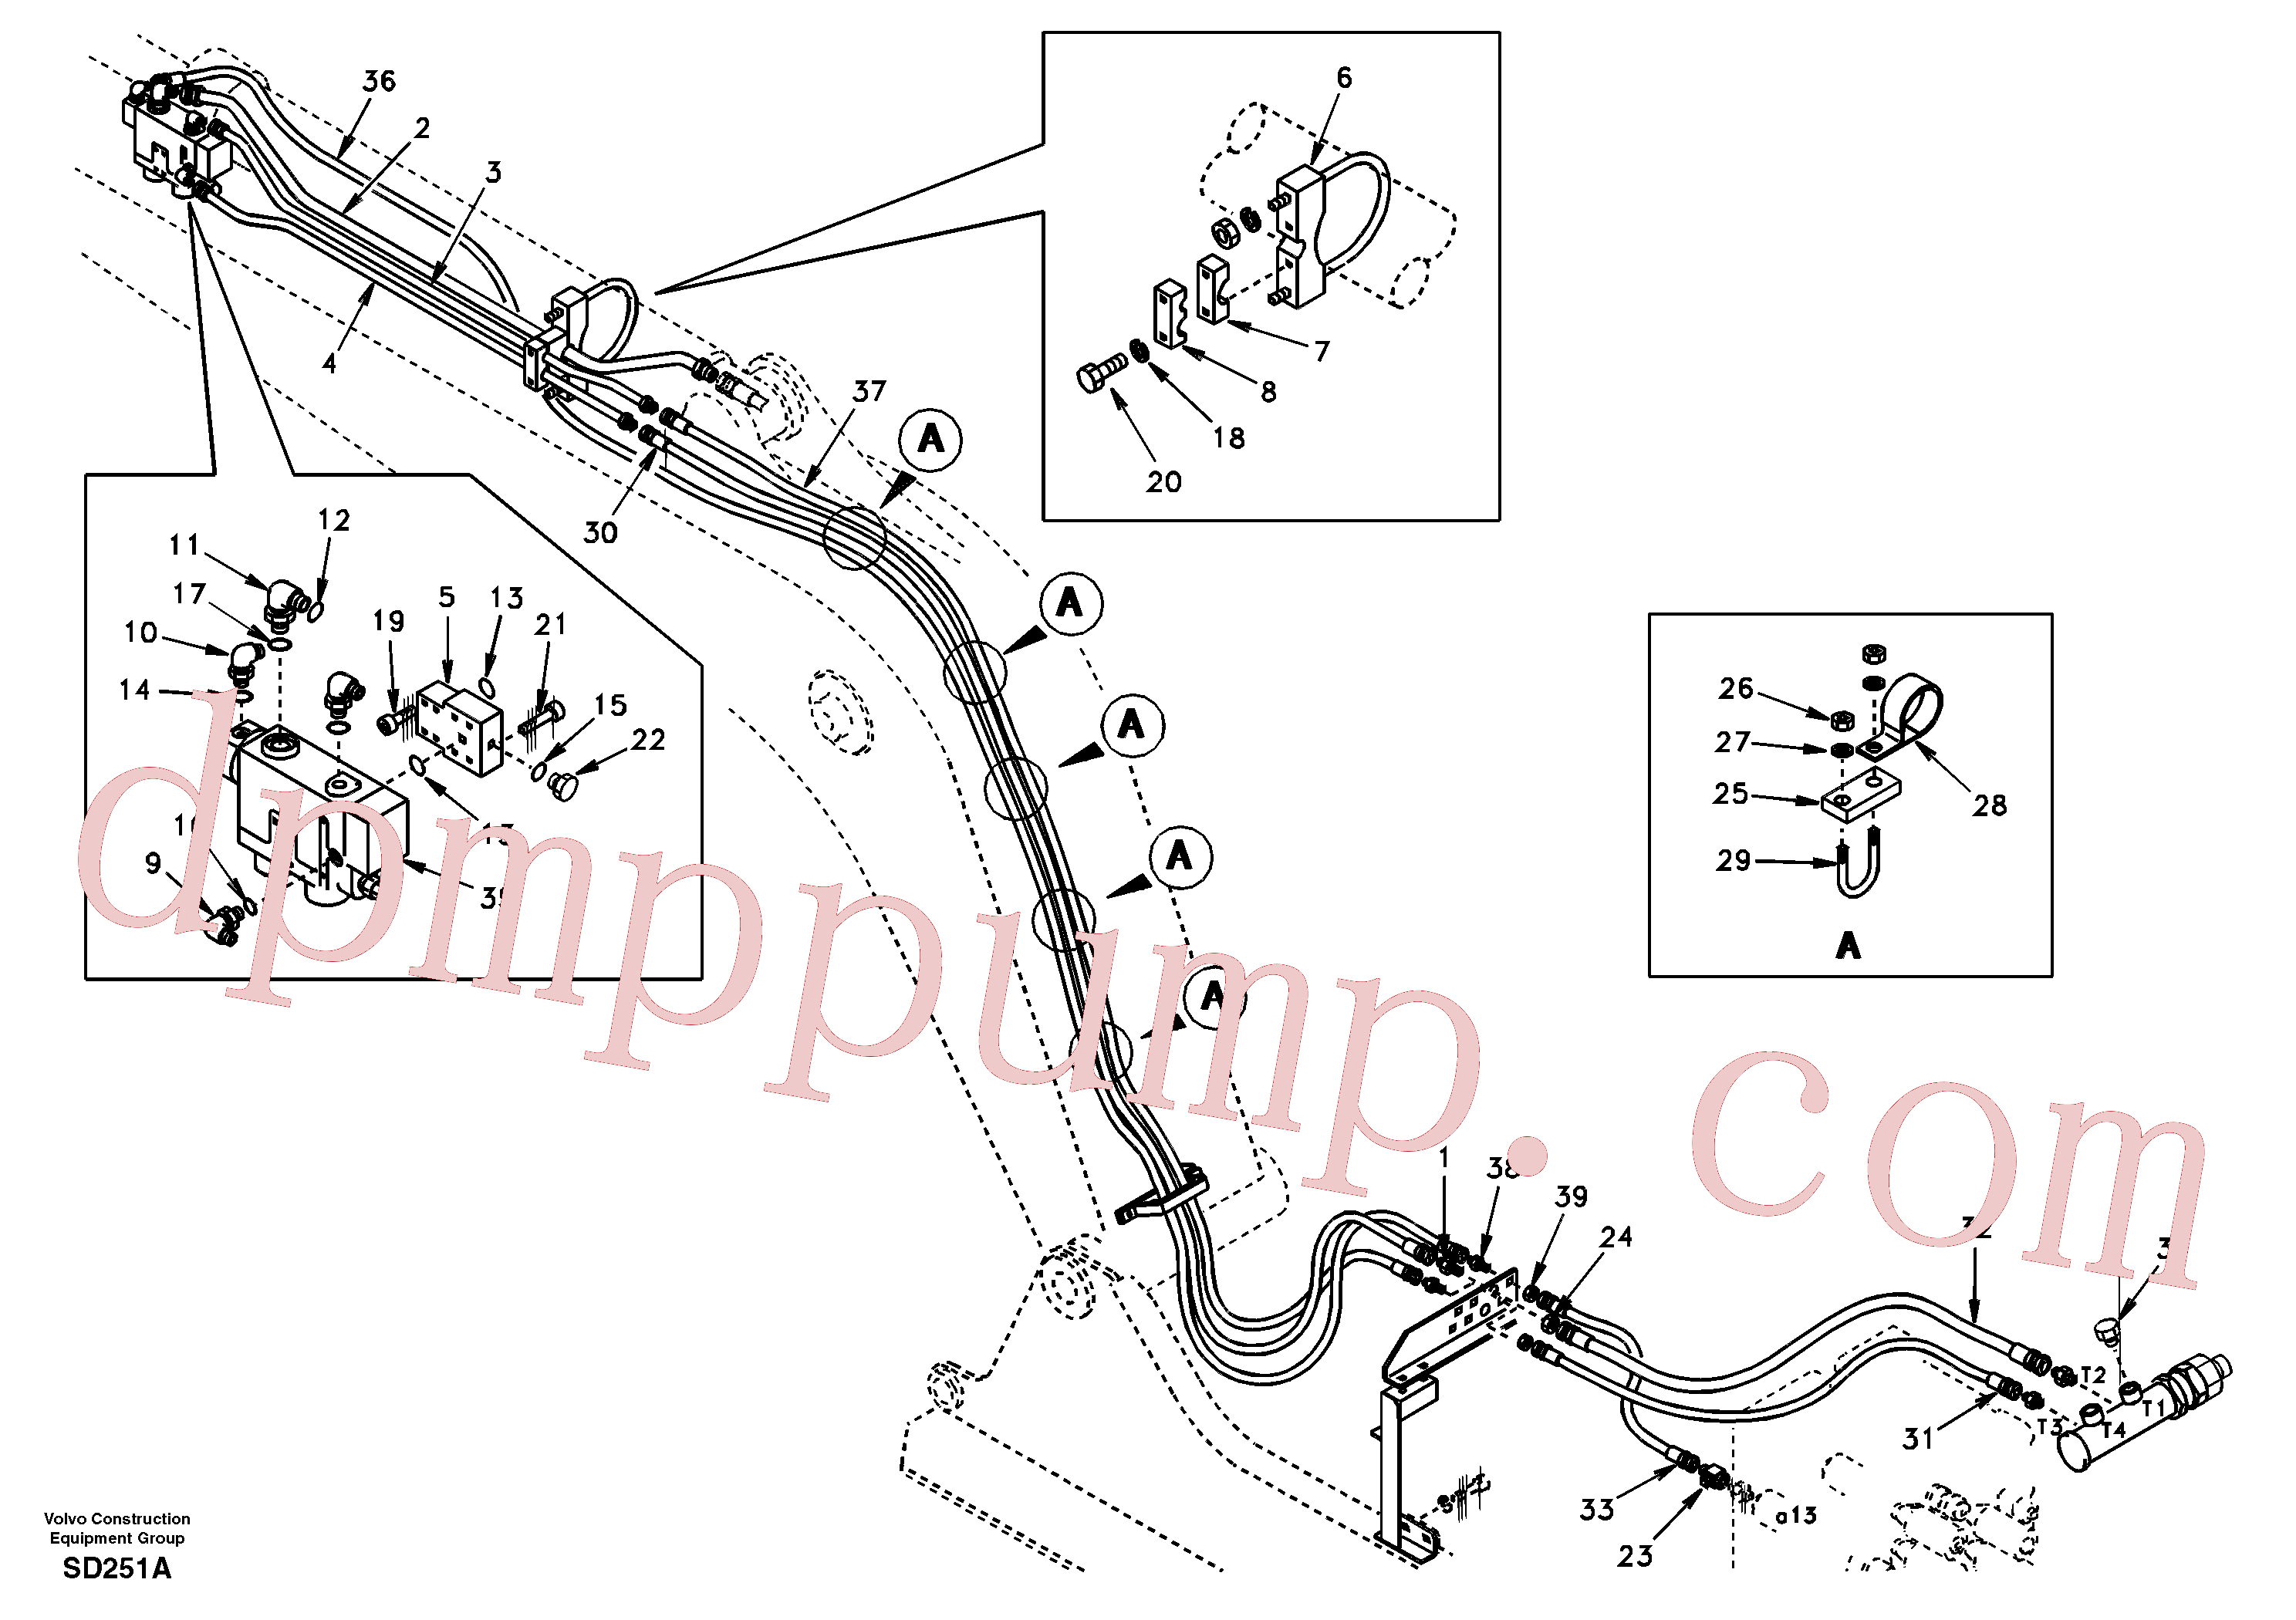 SA9466-03301 for Volvo Working hydraulic, dipper arm rupture(SD251A assembly)